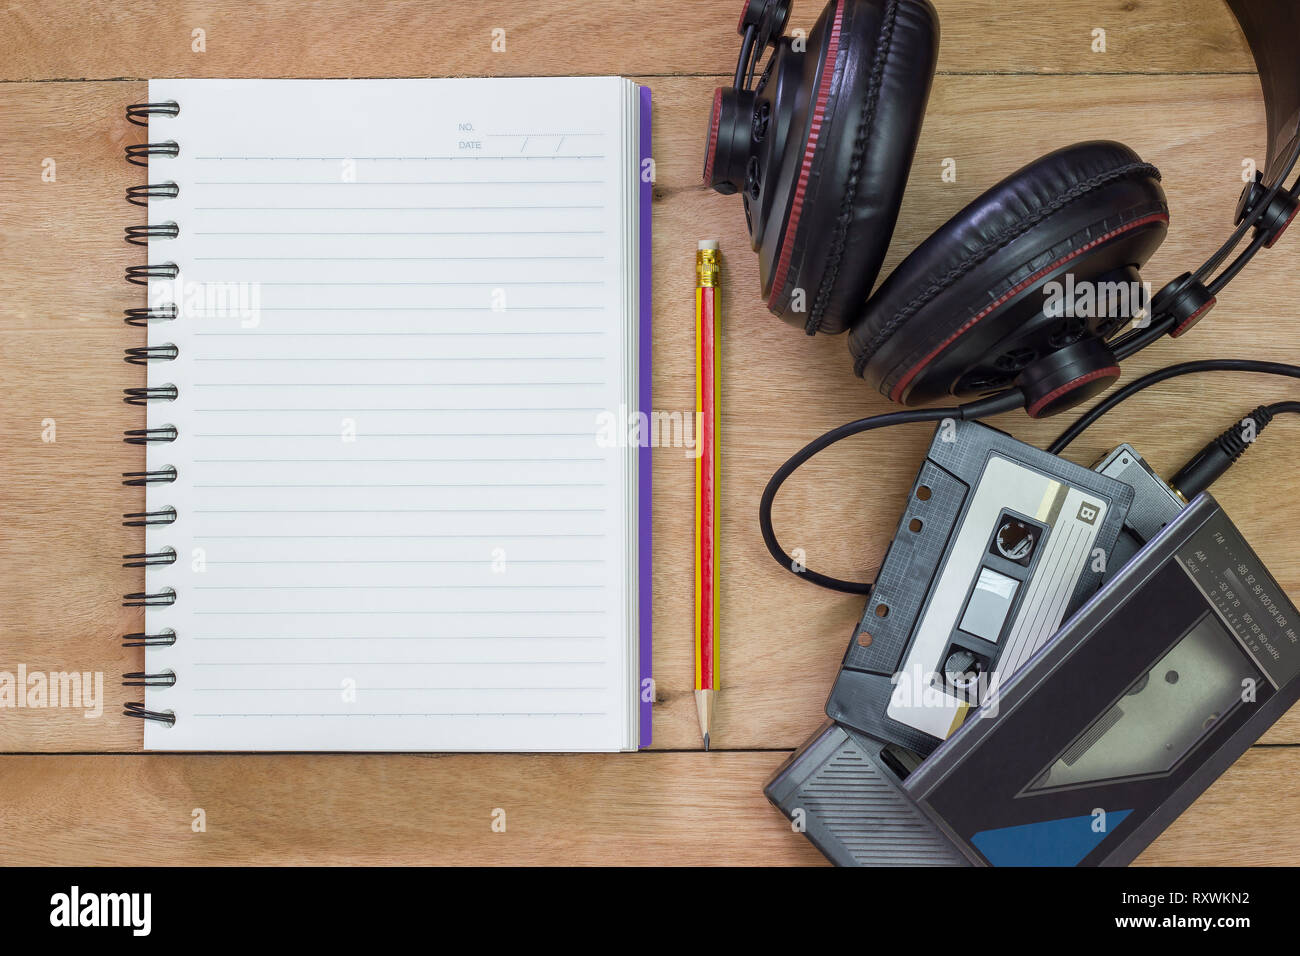 Bank notebook with pencil laying on the brown table. Vintage old tape player with headphones put on the table as well. - Stock Image